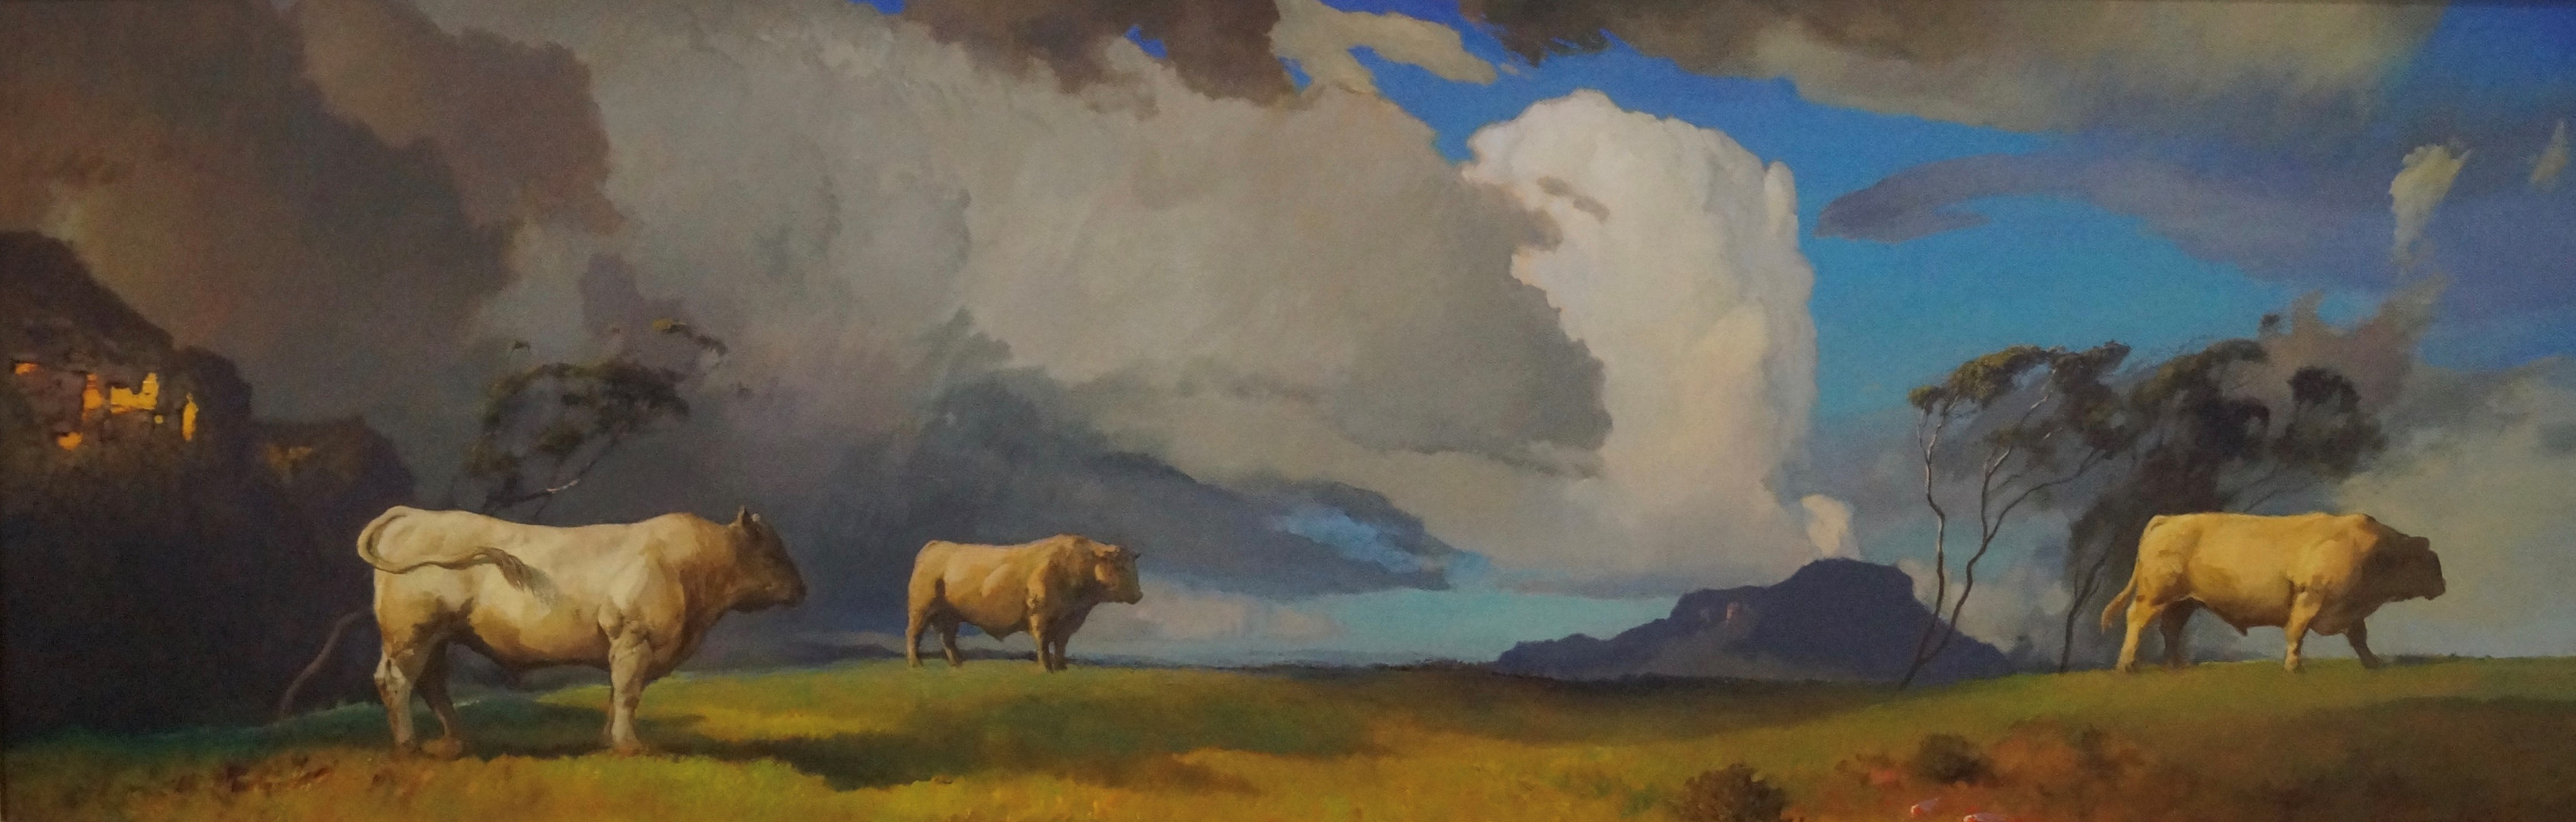 "2019 Peabody Wilpinjong Prize for Hanging Art - Graham Cox ""Stormy Pastoral"""